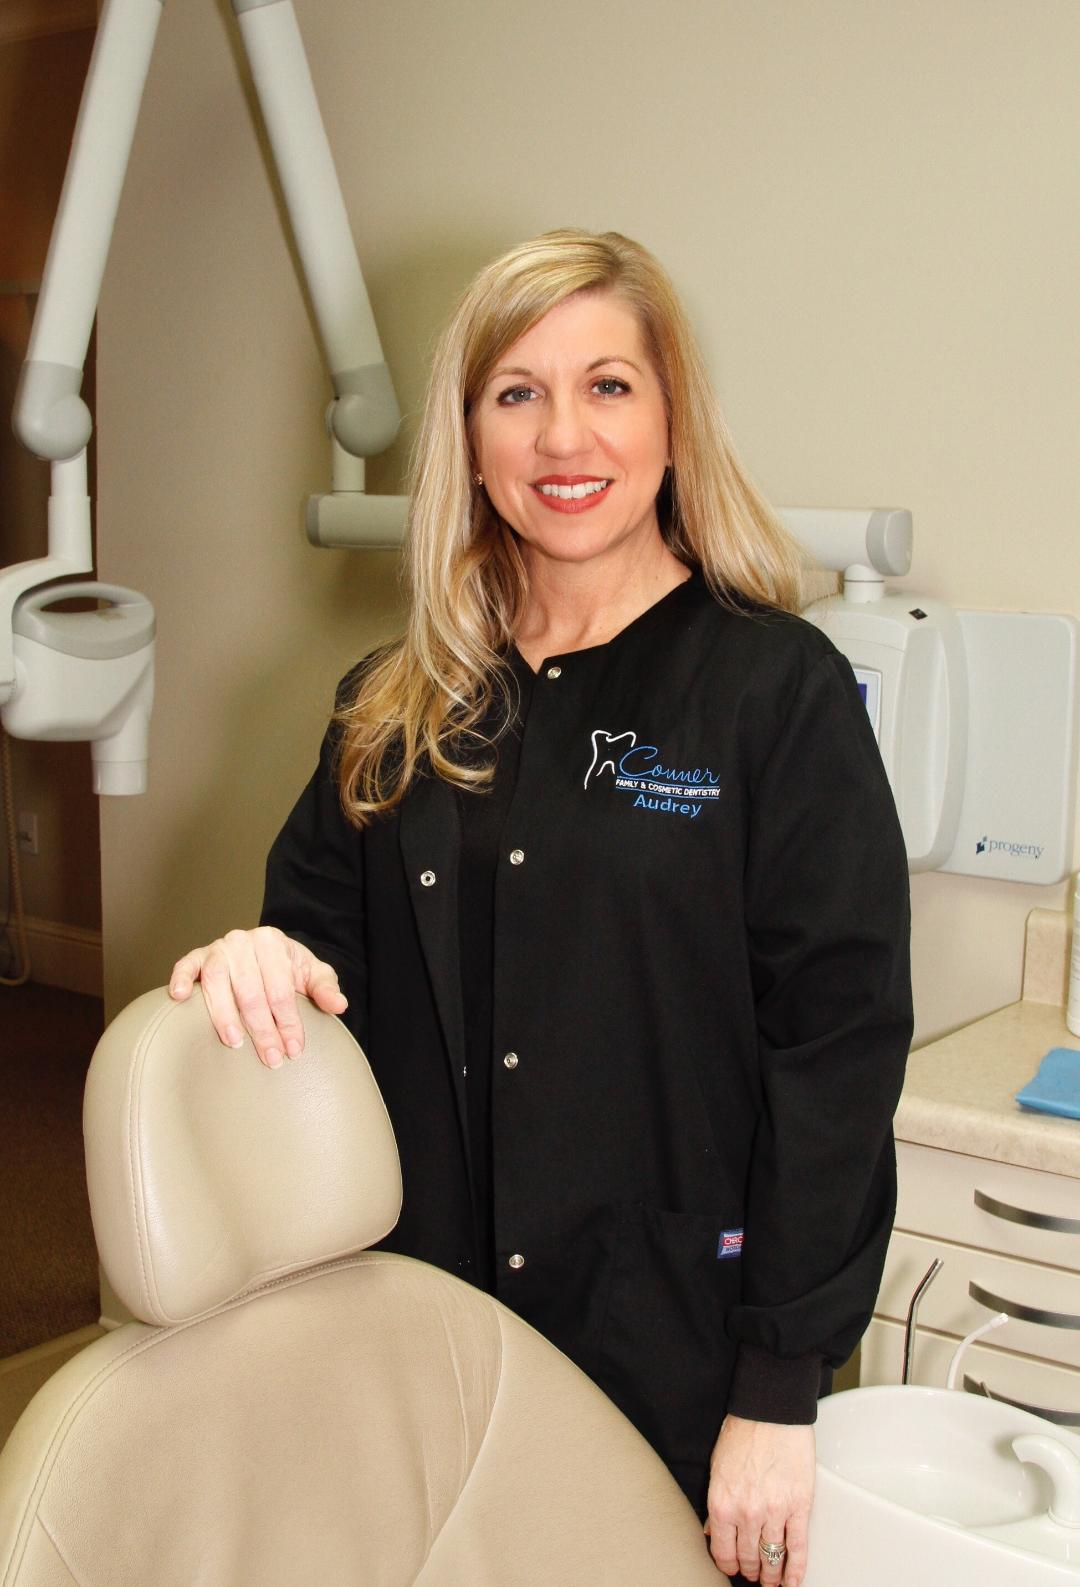 Audrey - Conner Family & Cosmetic Dentistry